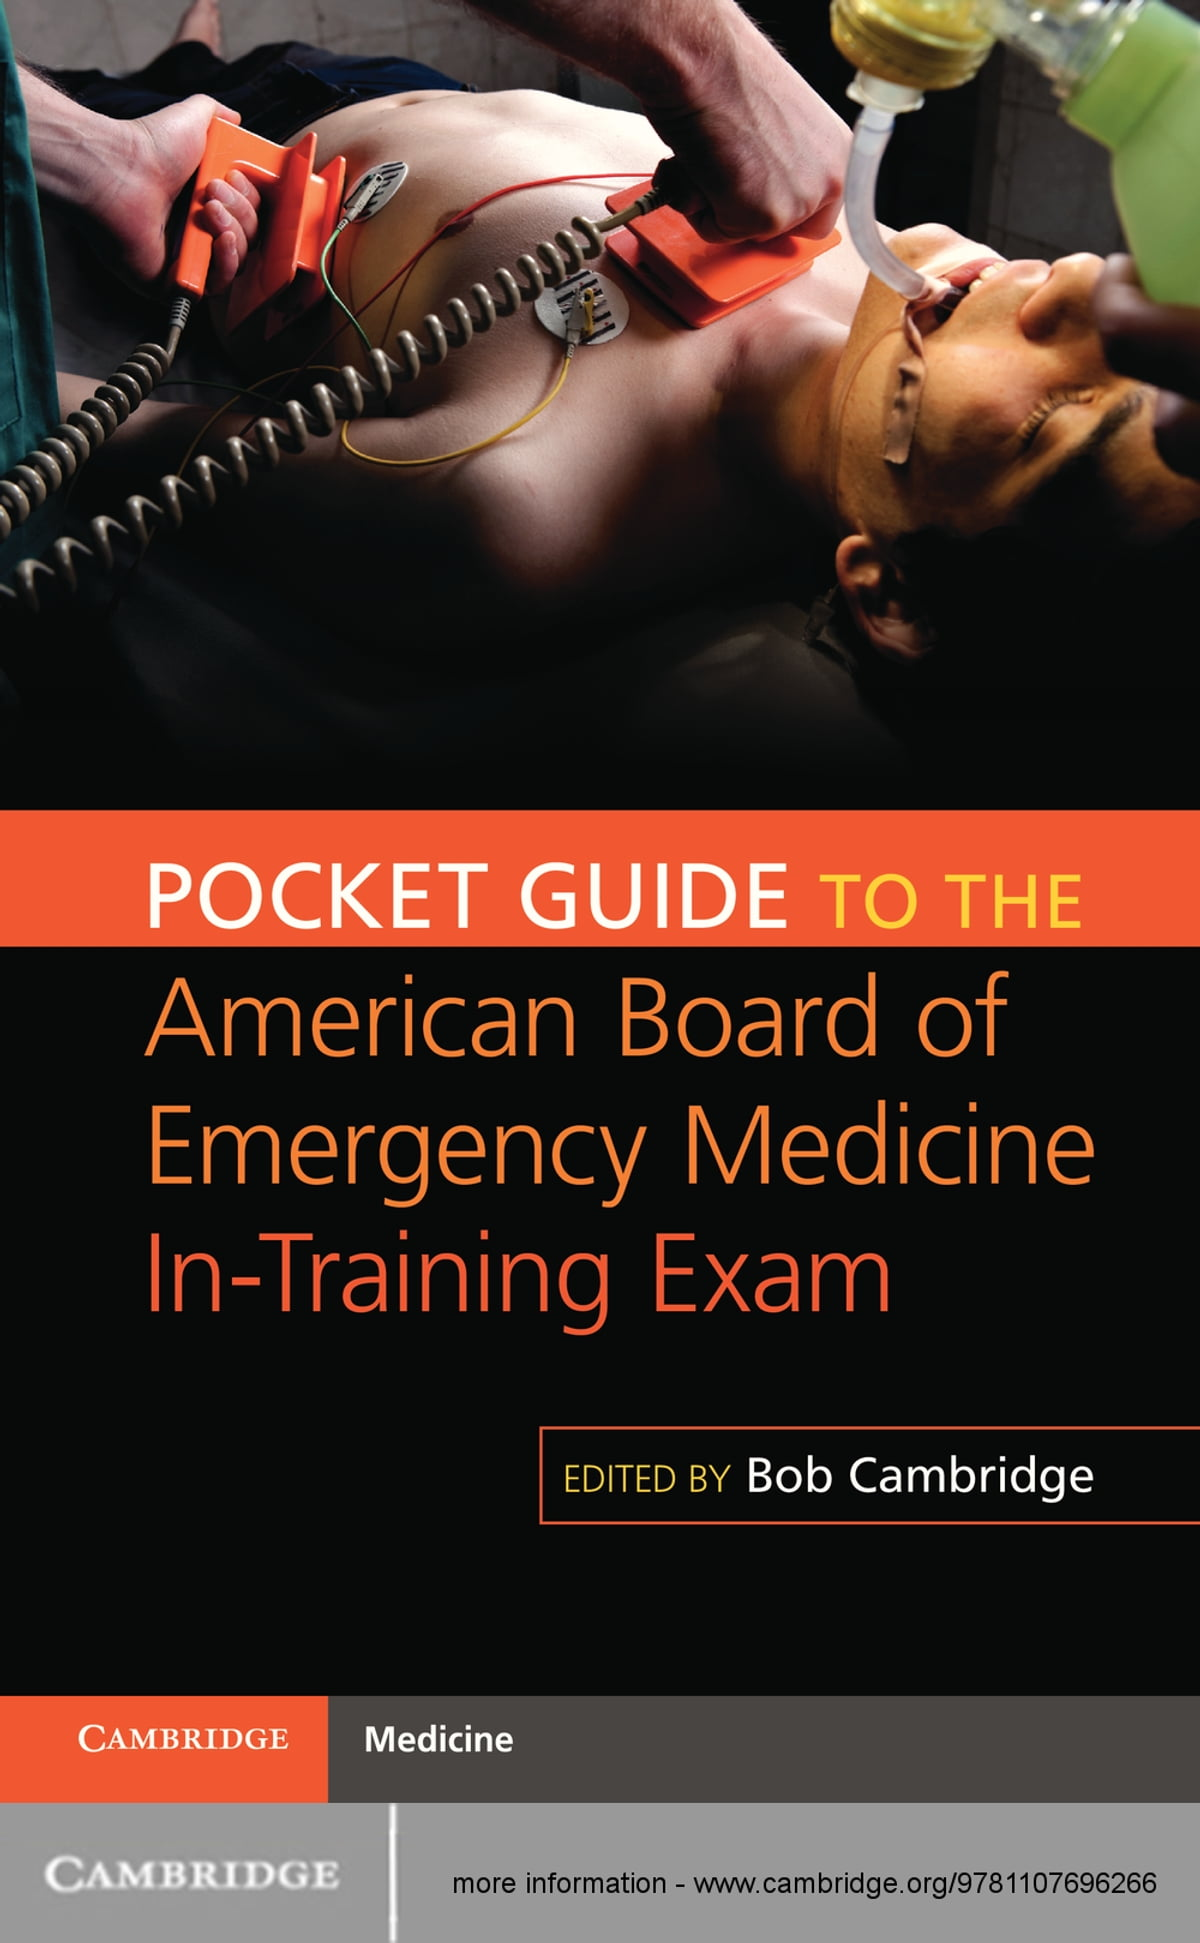 Pocket Guide to the American Board of Emergency Medicine In-Training Exam  eBook by - 9781107272842 | Rakuten Kobo